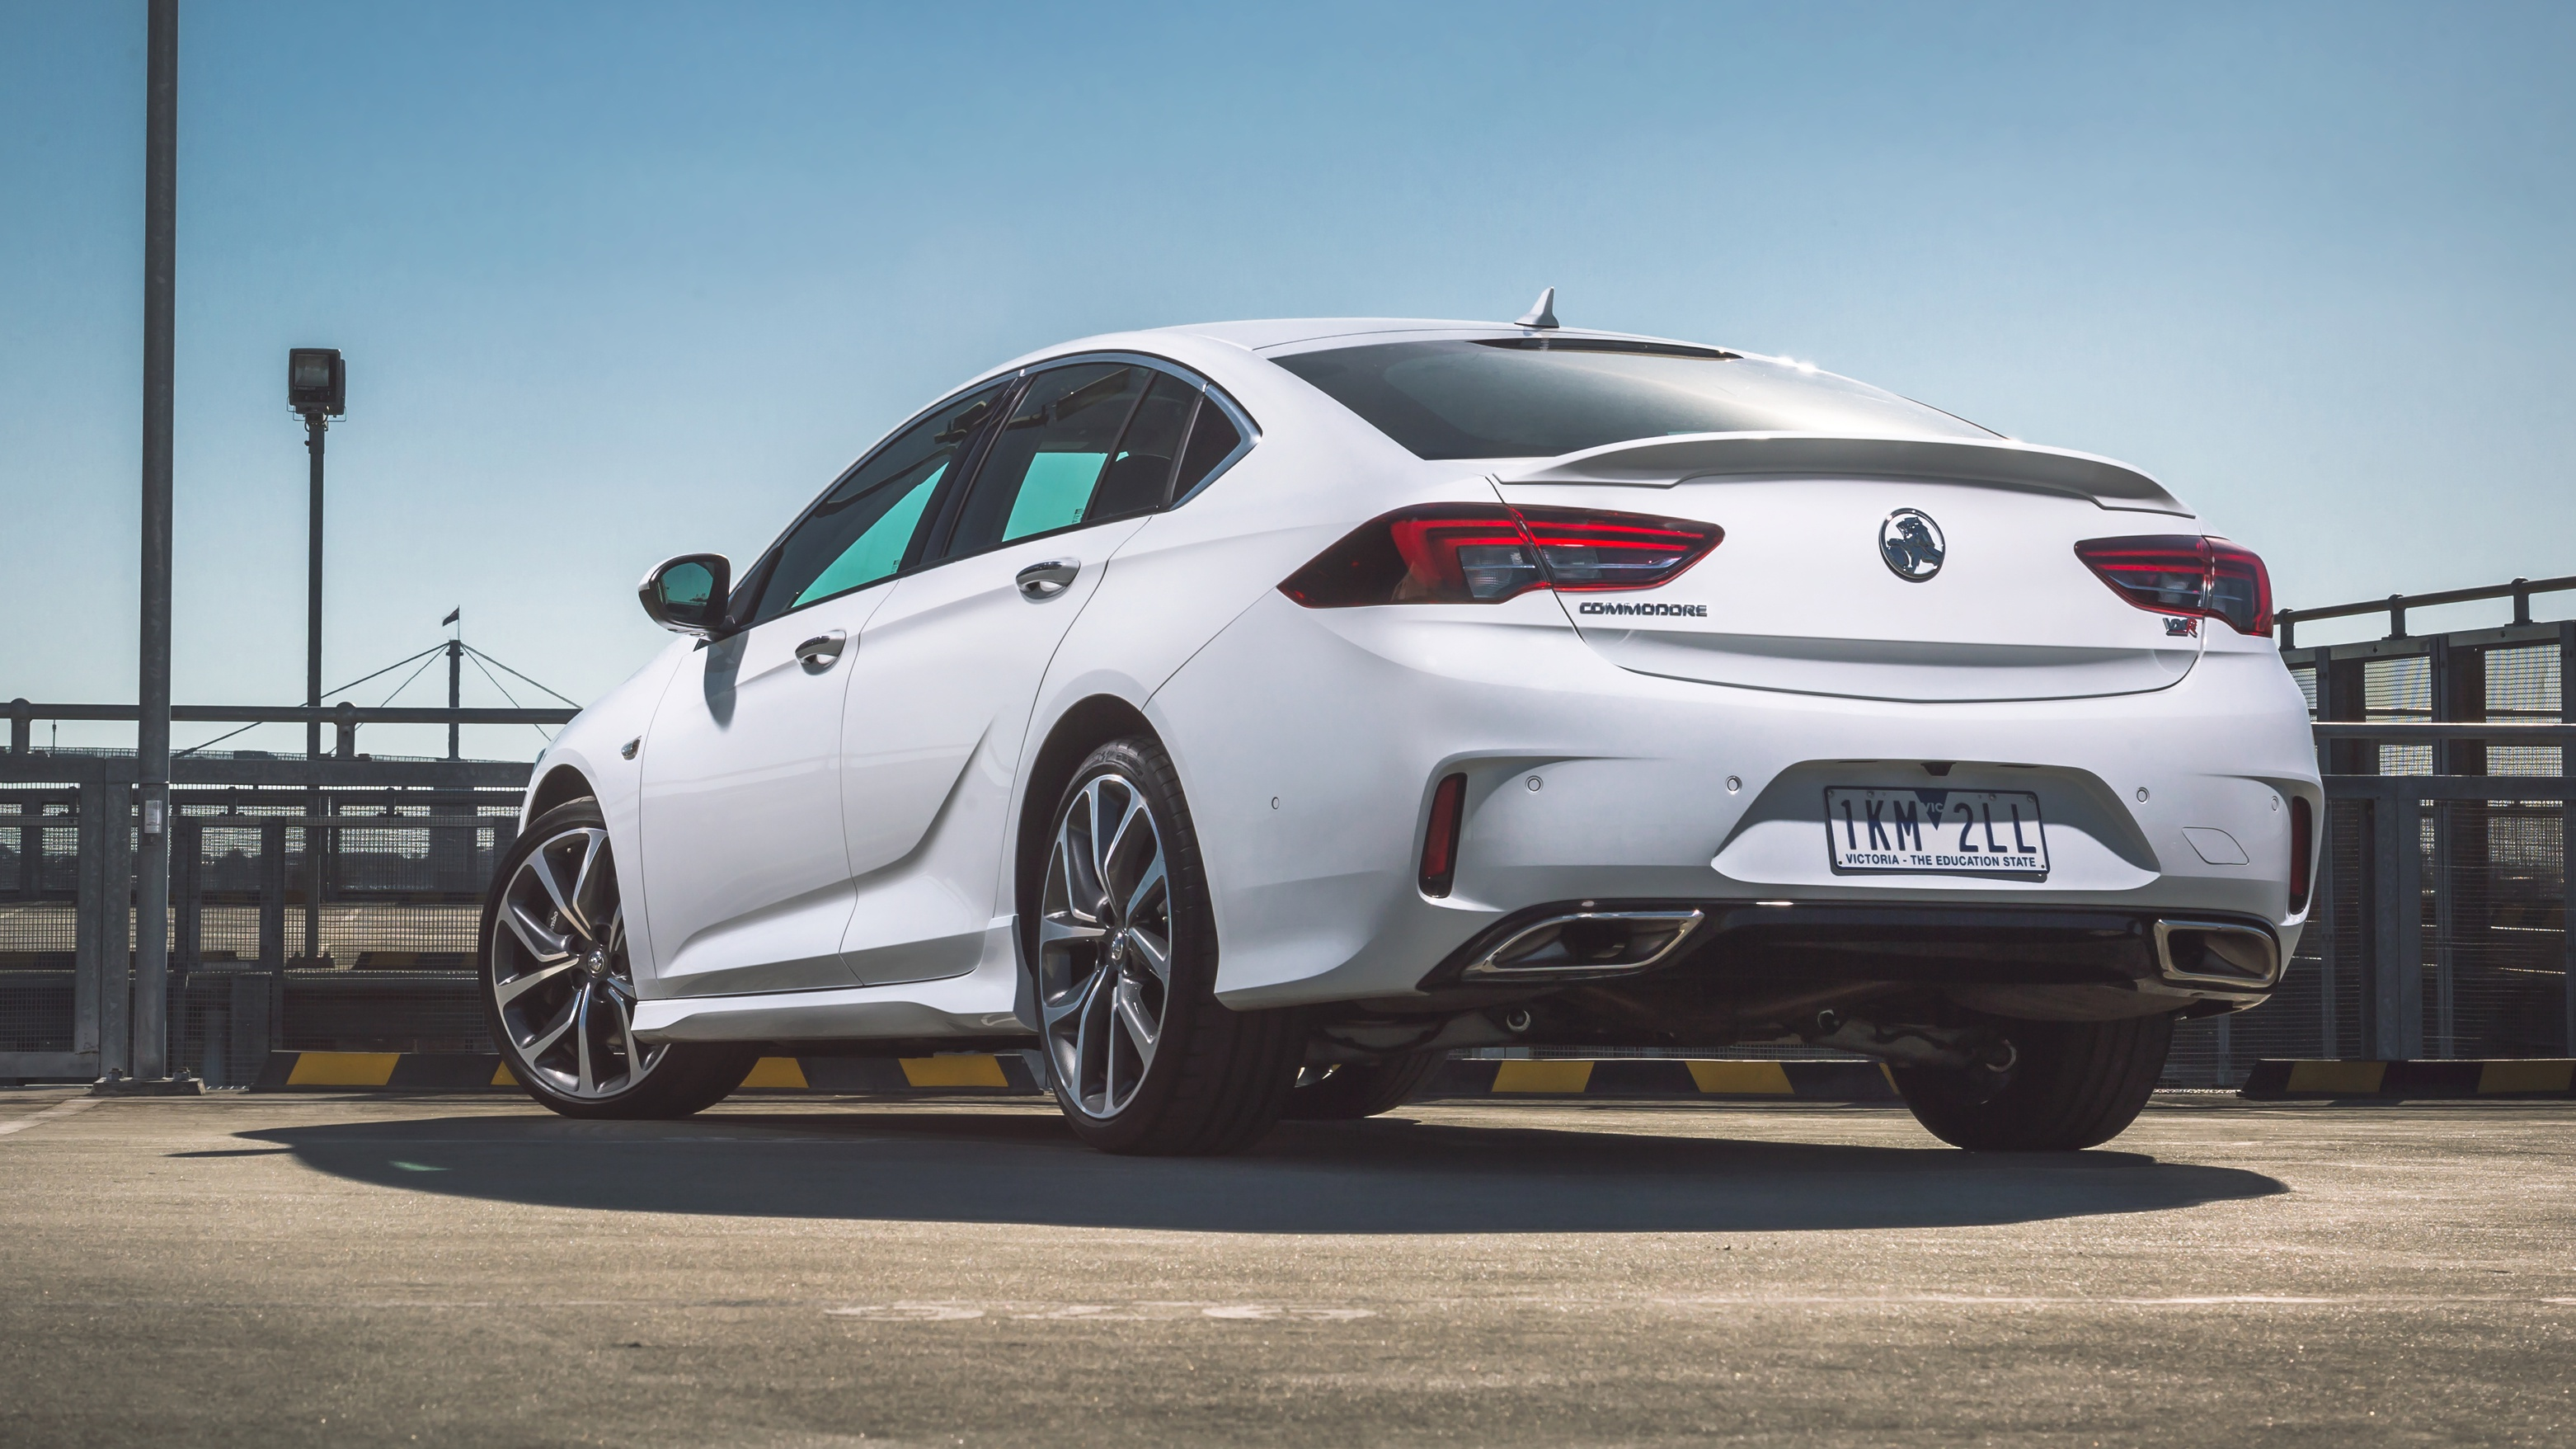 Rolls Royce Starting Price >> News - Holden Reveals 2018 Commodore Pricing & Specifications